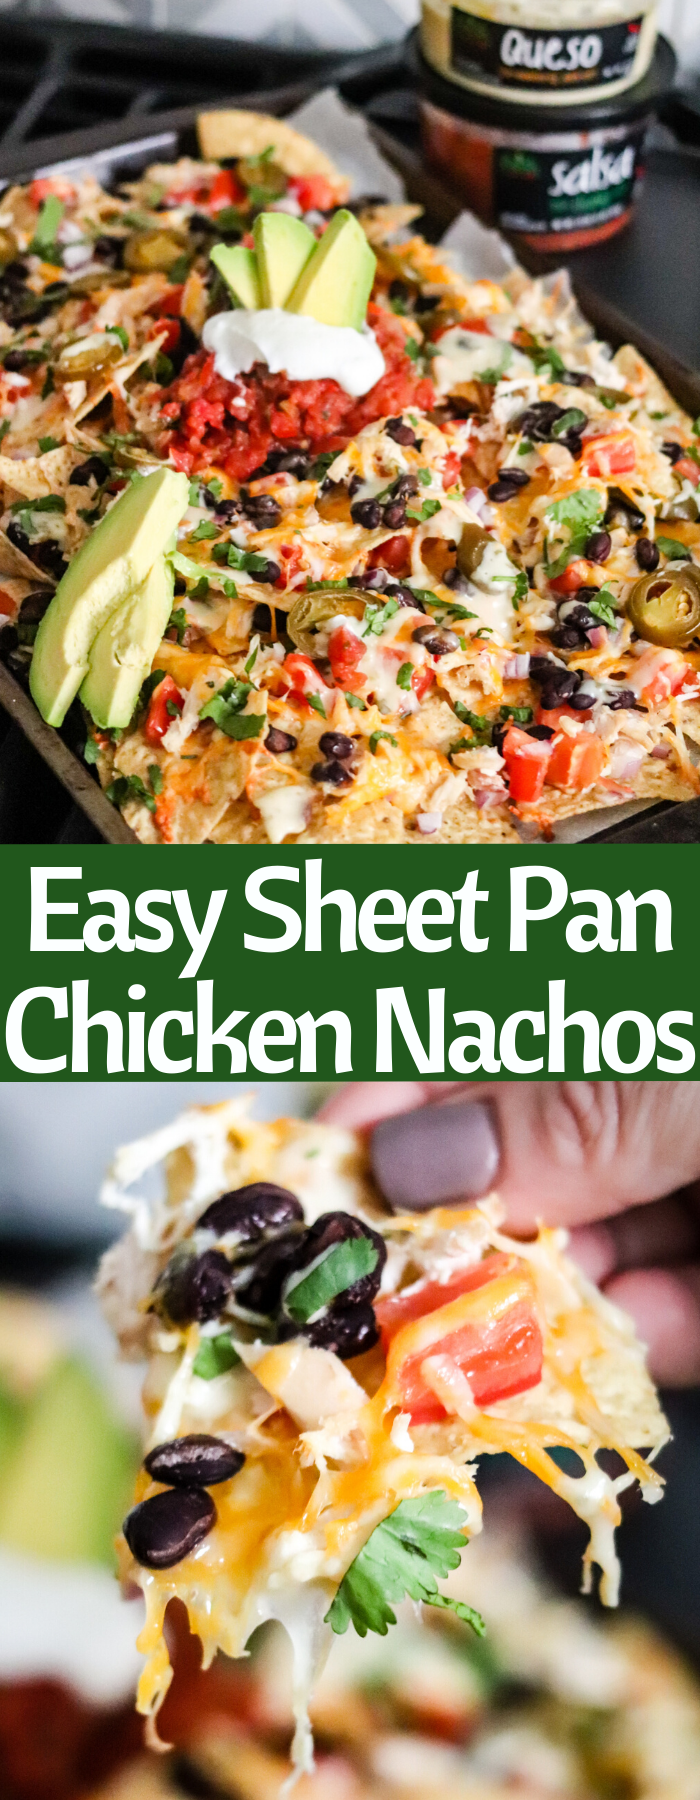 Easy Sheet Pan Nachos are the perfect solution for tailgating, game day, or a quick meal. Layer crunchy tortilla chips with shredded chicken, fresh vegetables, cheese and then top with delicious queso and salsa!